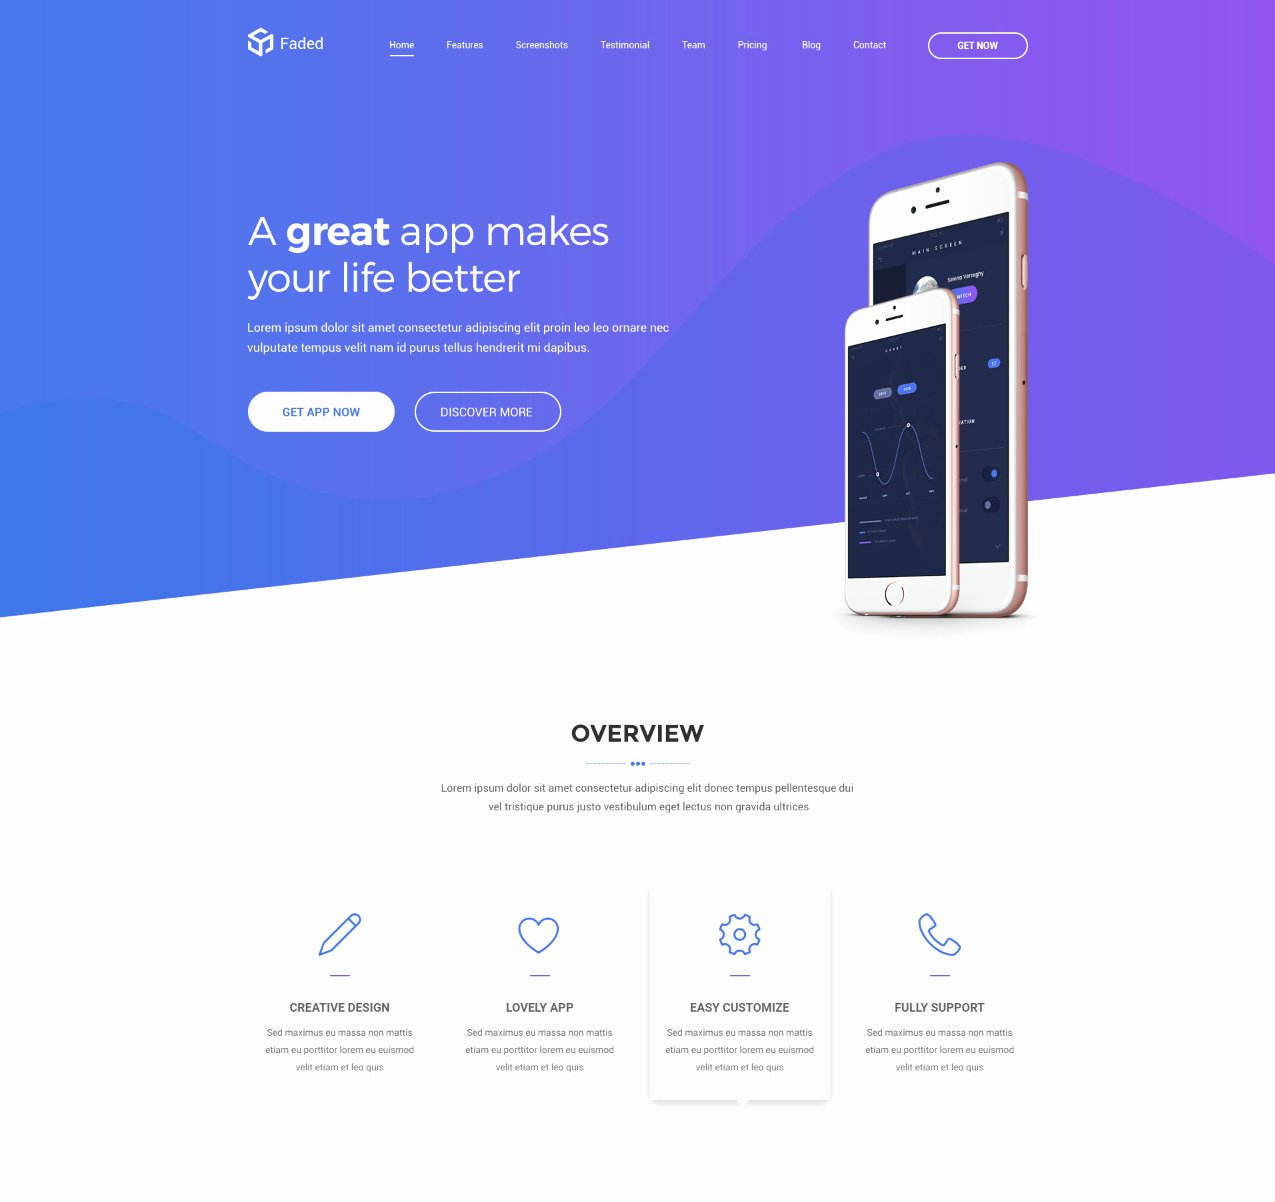 Mobile Apps Website Template Best Of Best Bootstrap HTML Website Templates for Mobile Apps